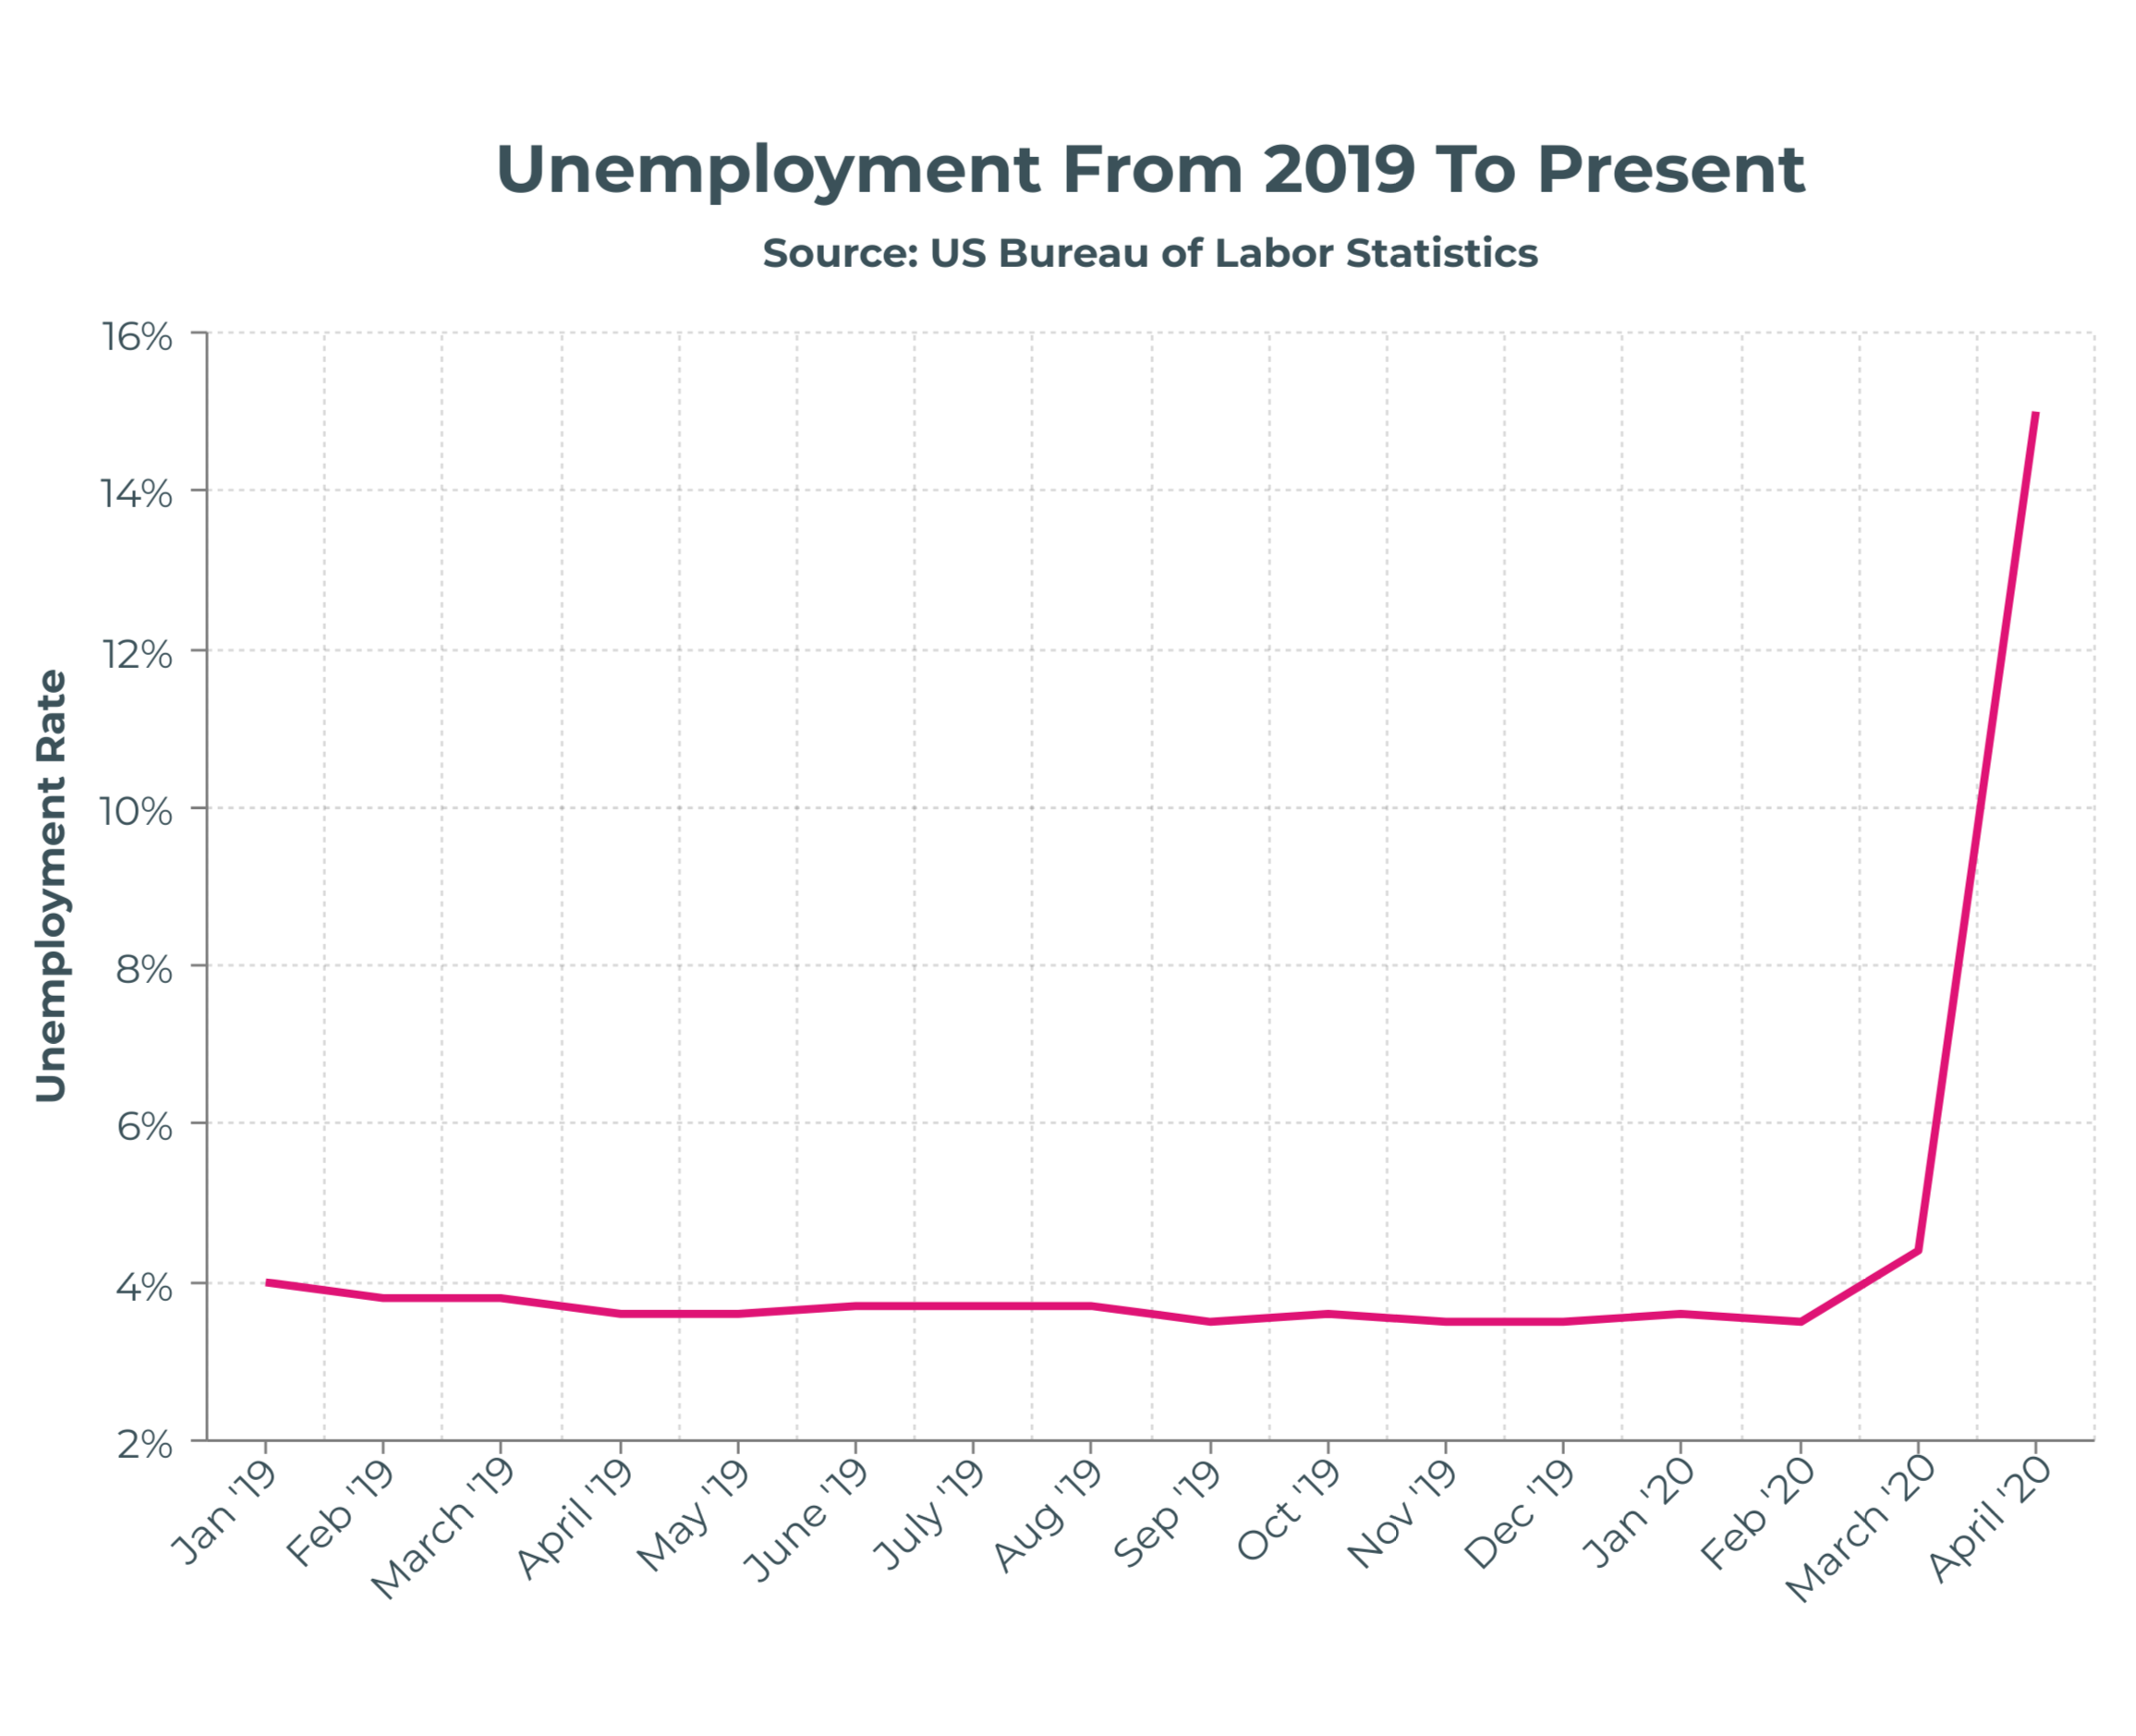 US Unemployment From 2019 To Present Coronavirus COVID19  April's unemployment rate represents a huge jump from what had been historical lows